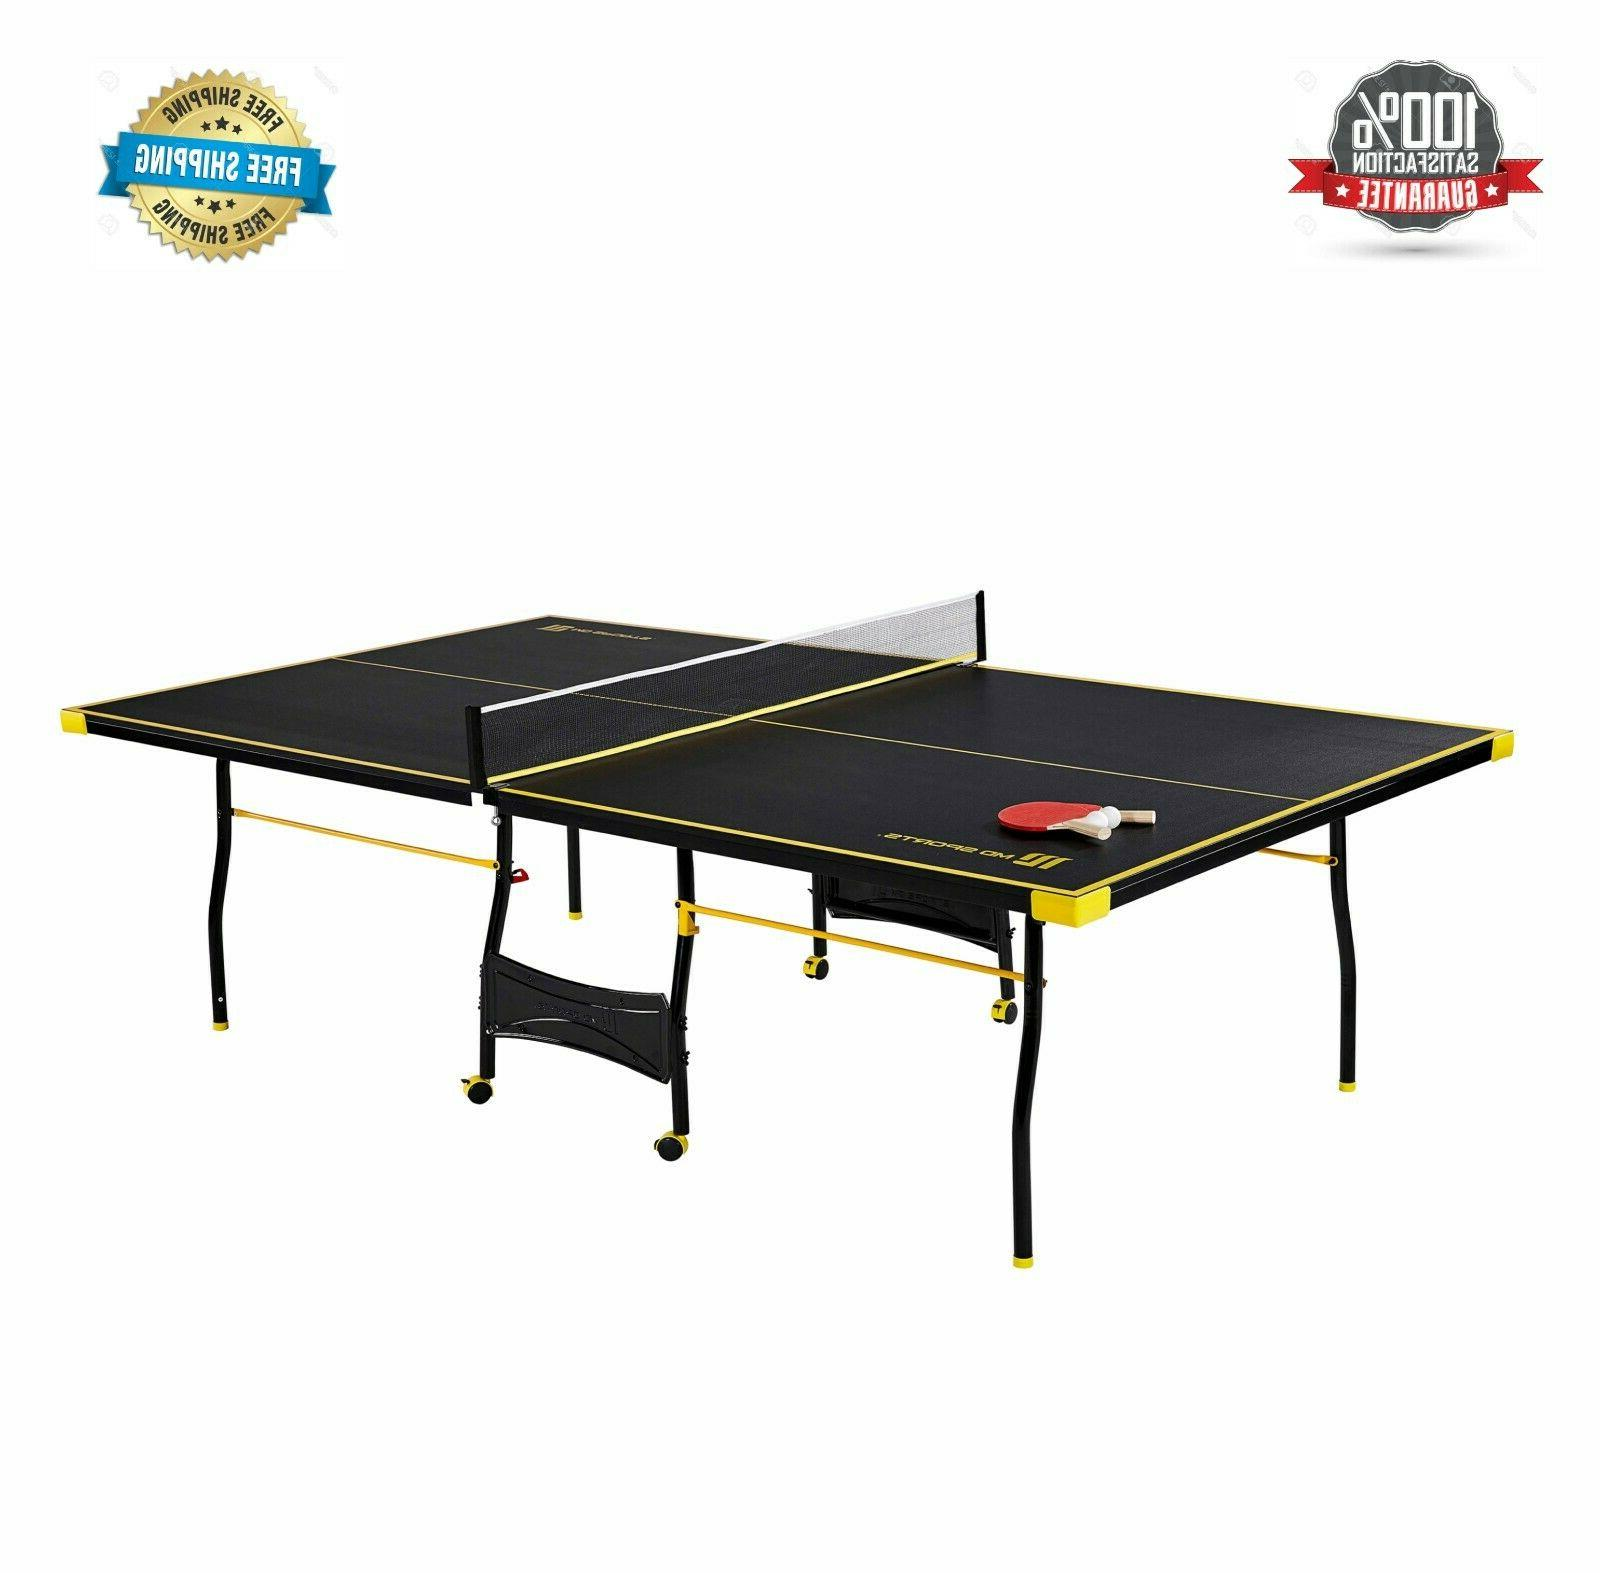 official size table tennis table with paddle